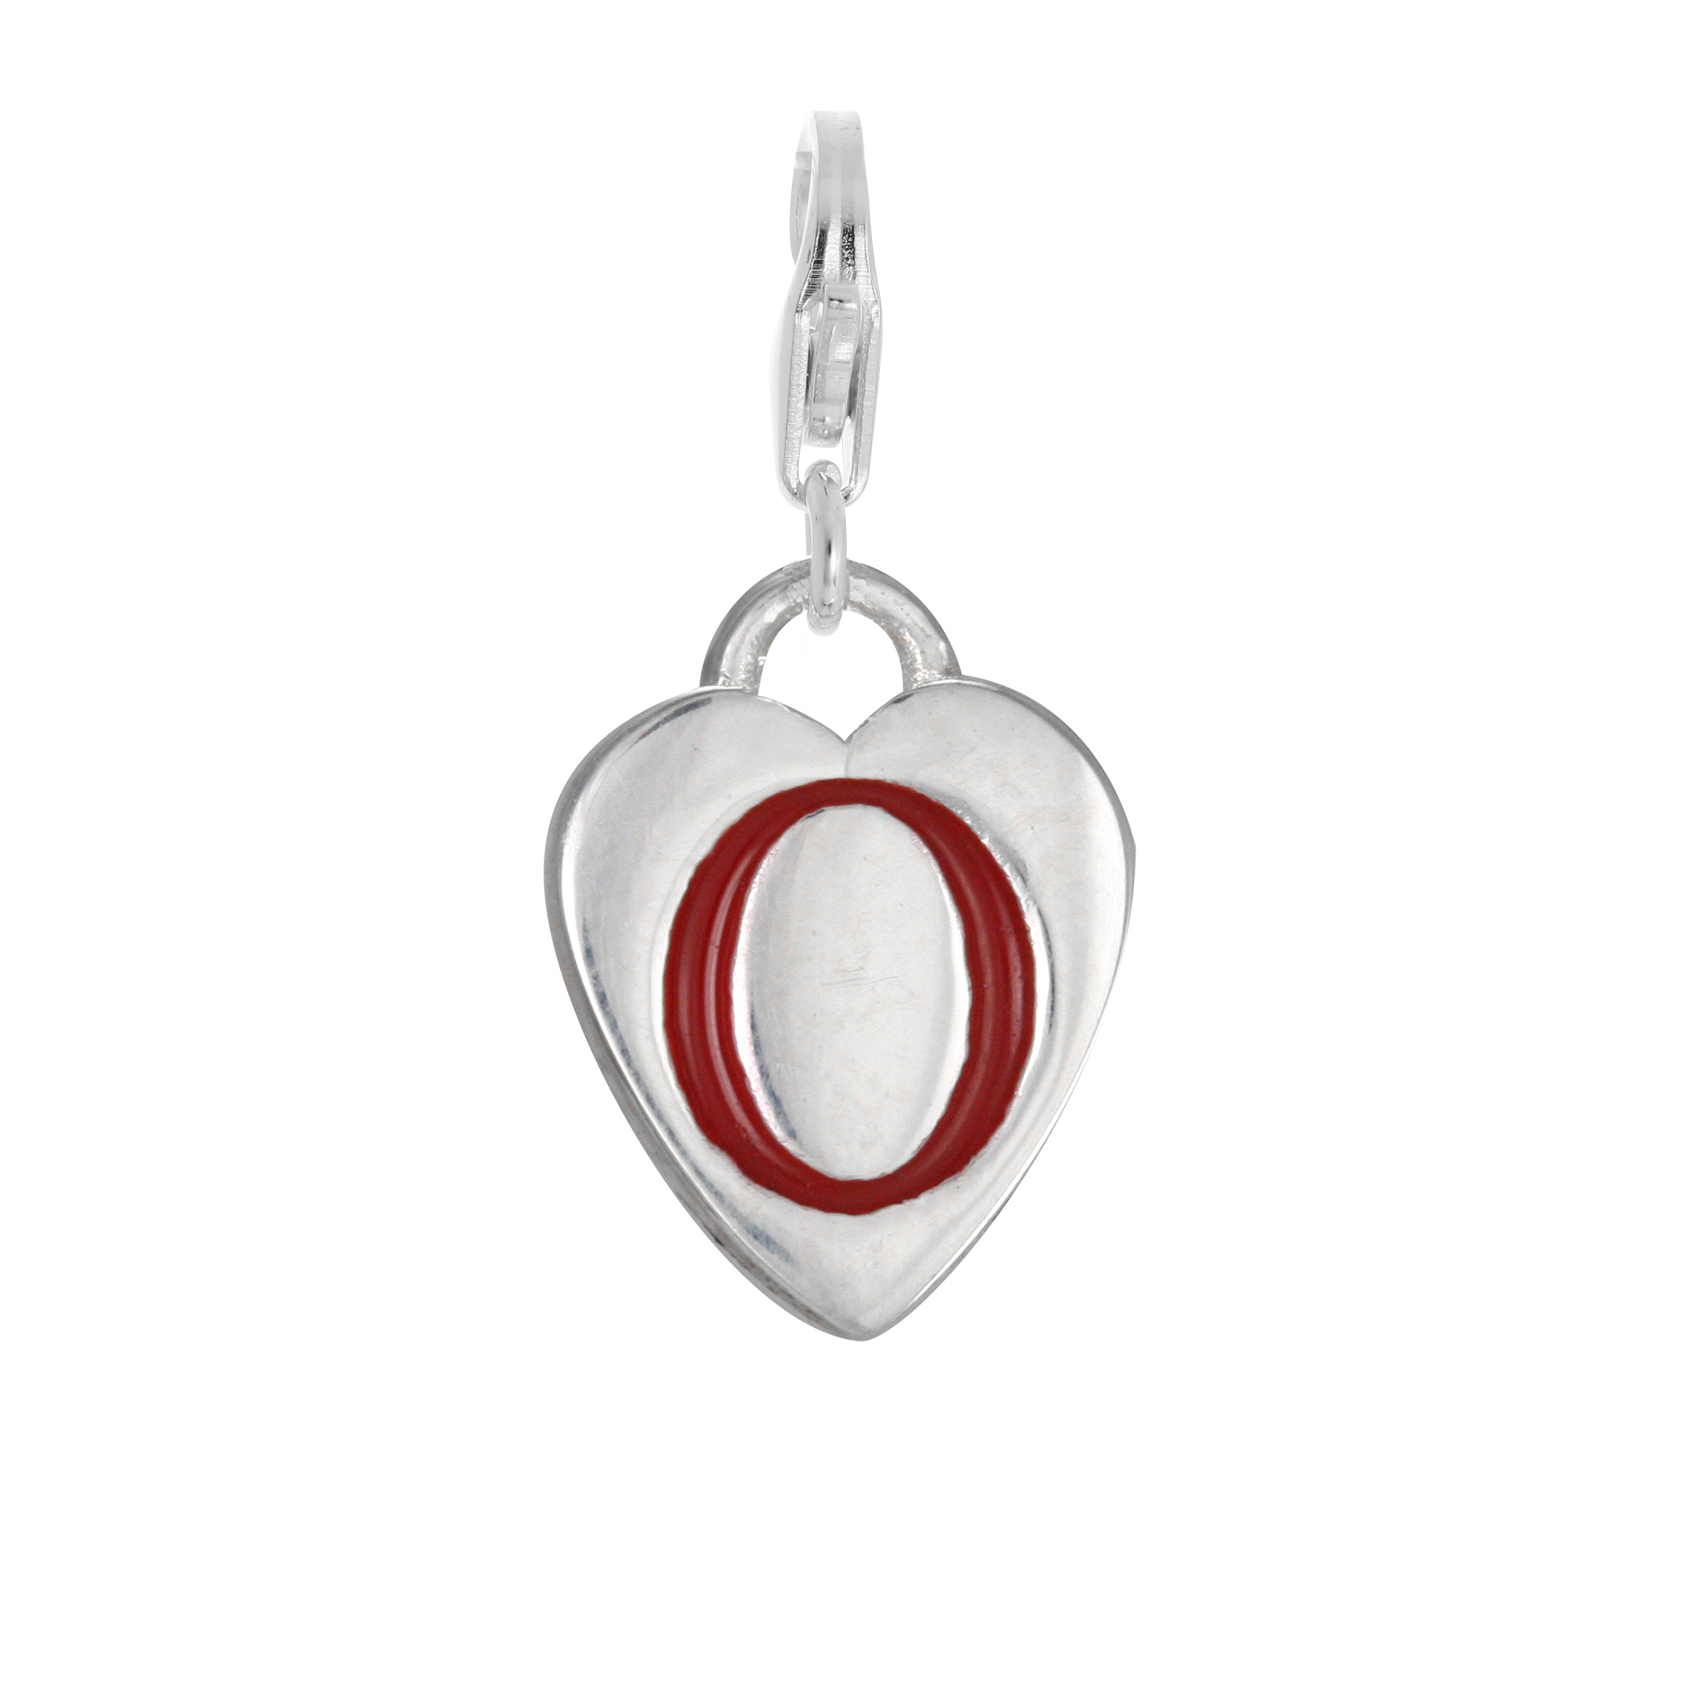 An image of Sterling Silver Enamel Heart Alphabet Letter O Charm on Clip